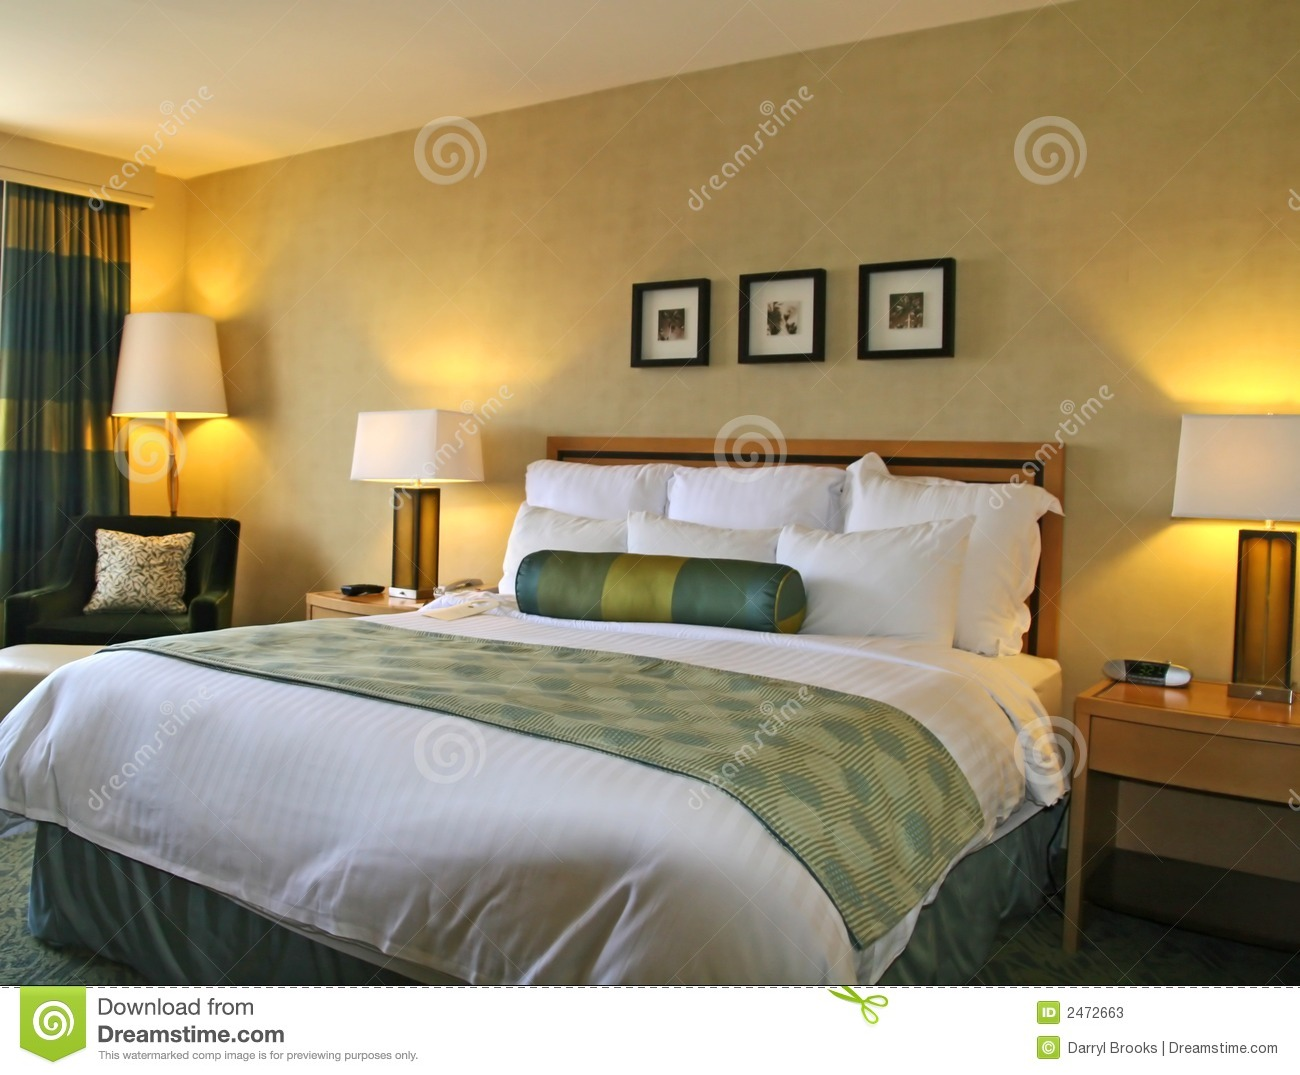 Lamp Light Hotel Bed Stock Image. Image Of Detail, Wall, Curtain